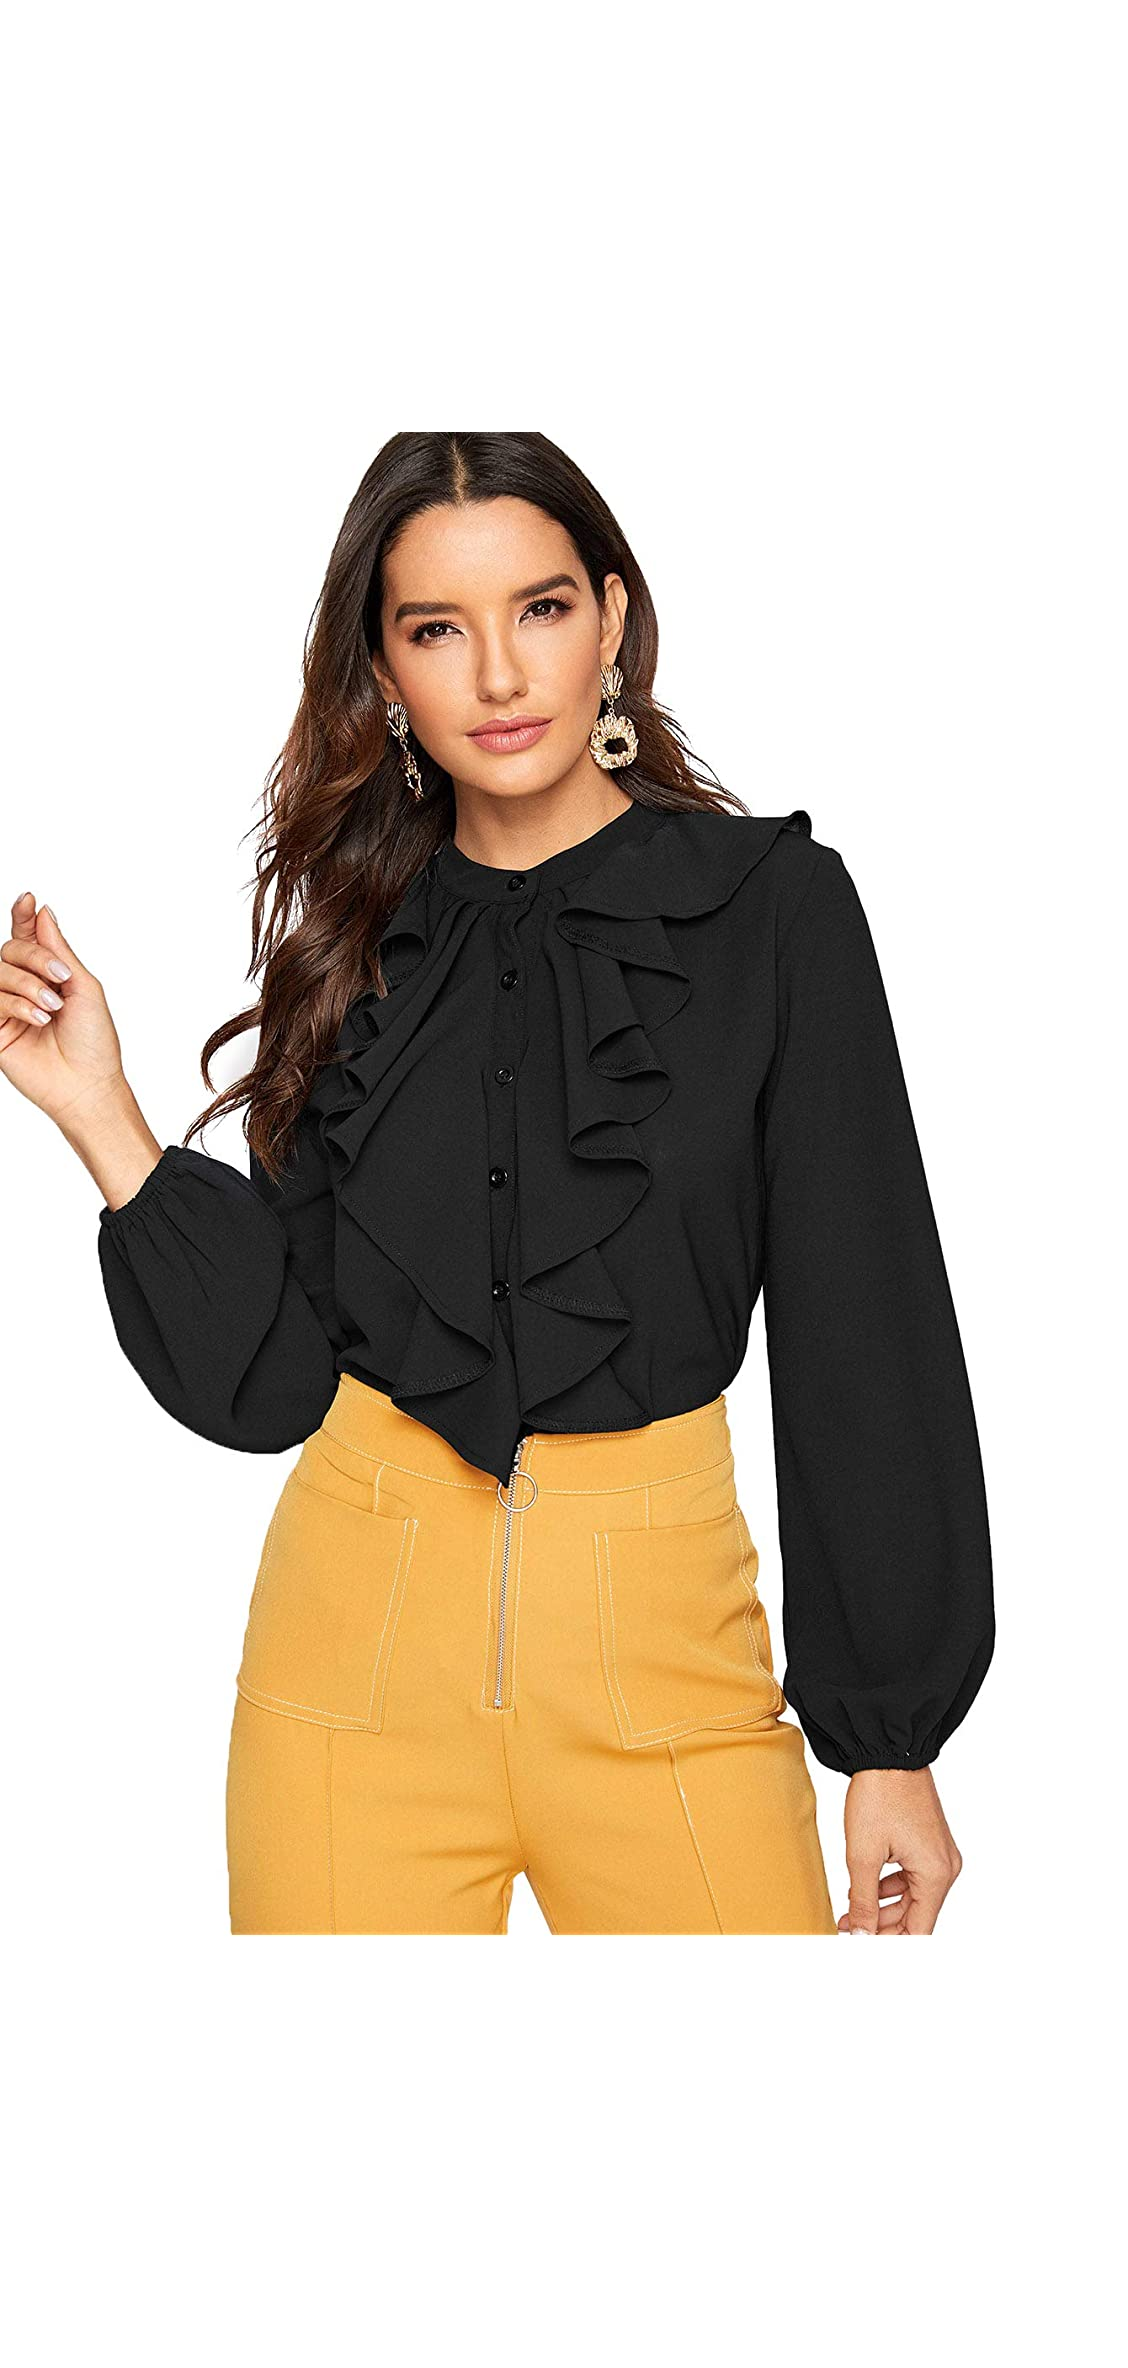 Women's Long Sleeve Button Down Lotus Ruffled Work Shirt